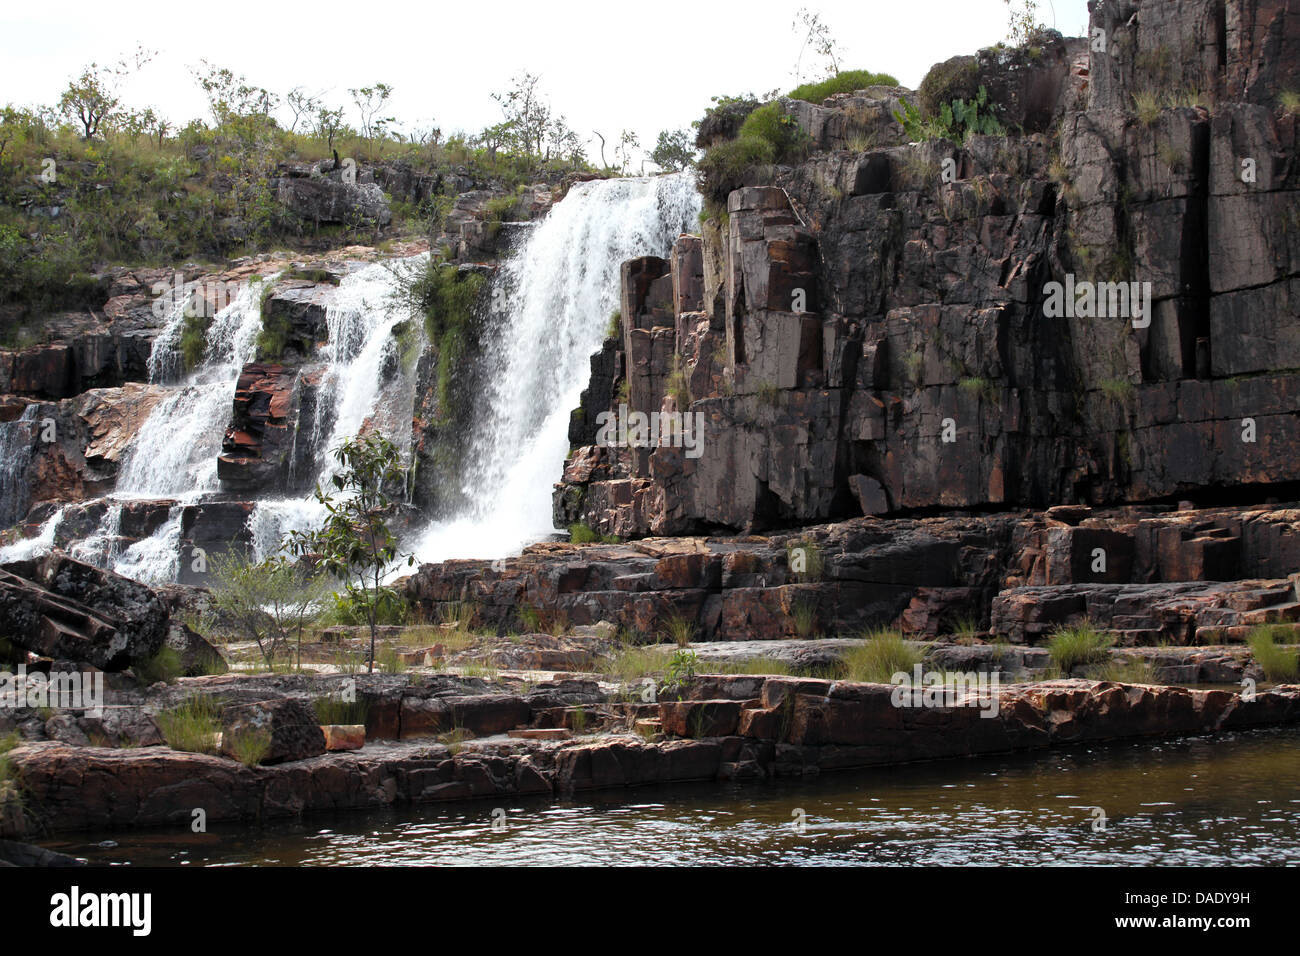 Water fall at Chapada dos Veadeiros in central Brazil Goias state, Brazil - Stock Image